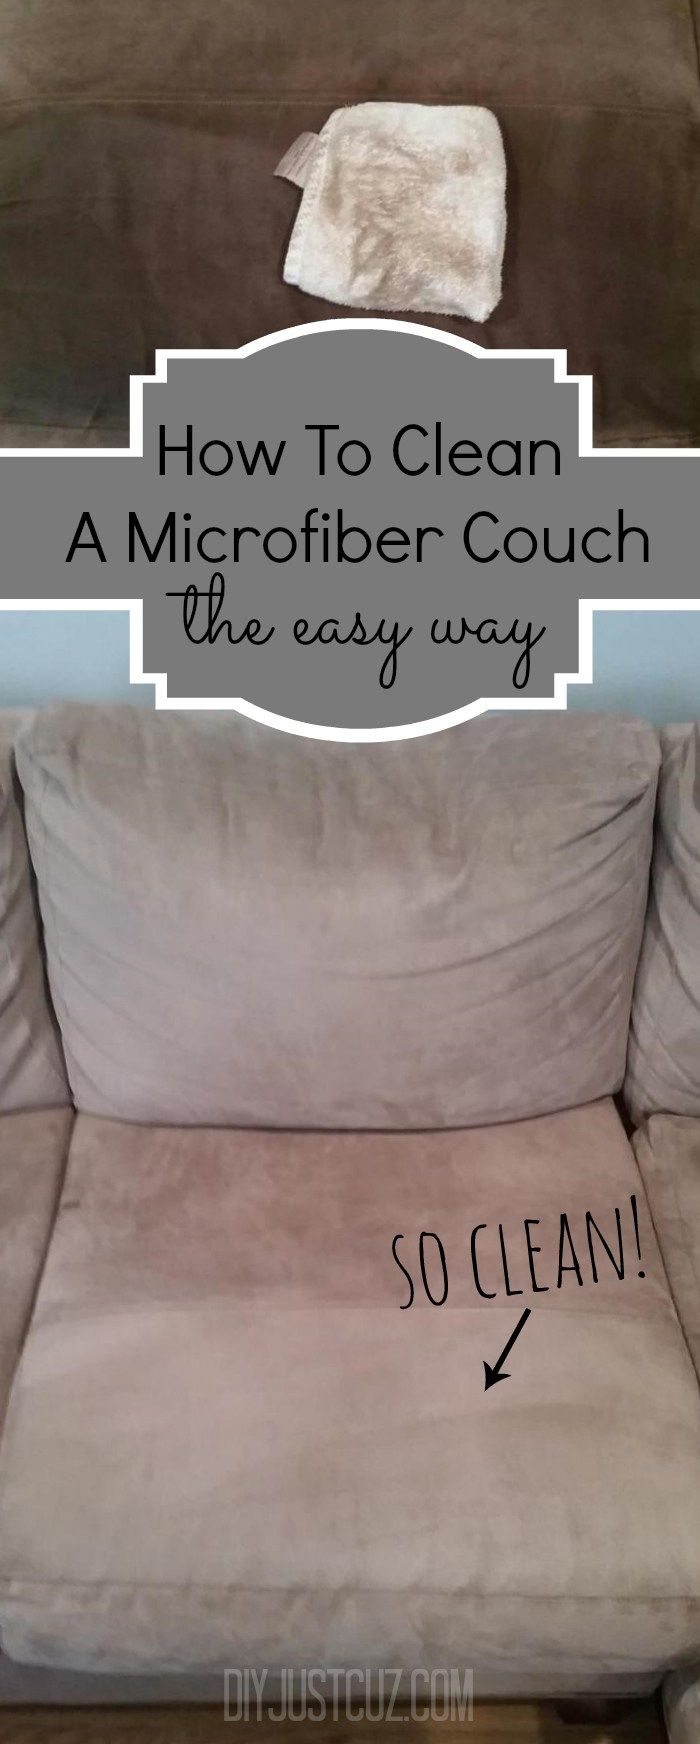 Best 25 Microfiber couch ideas on Pinterest